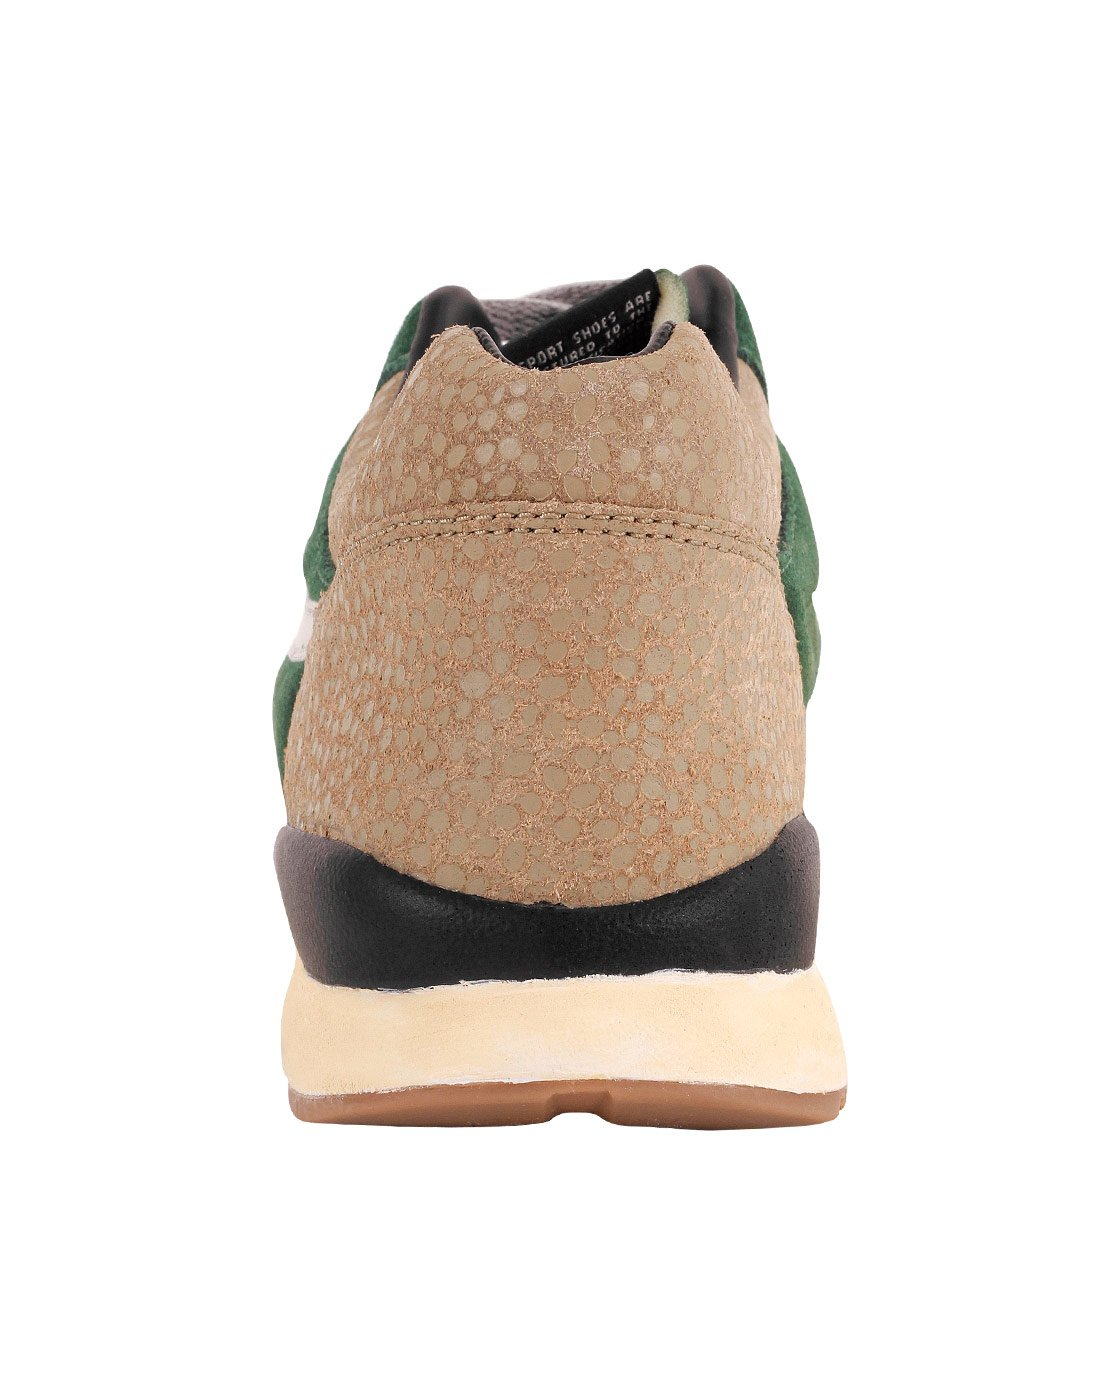 Nike Air Safari VNTG Gorge Green